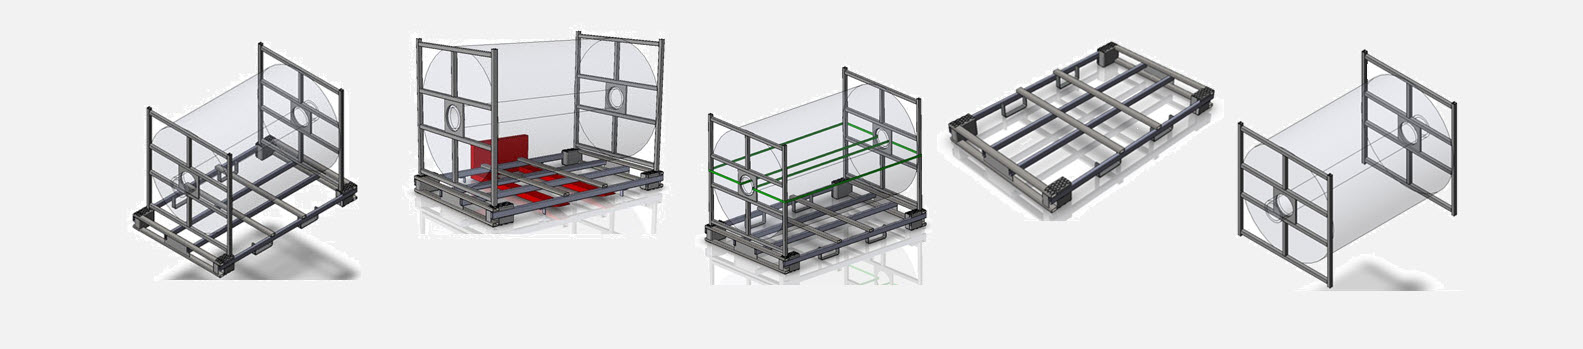 INDUSTRIAL STORAGE & SHIPPING SOLUTIONS